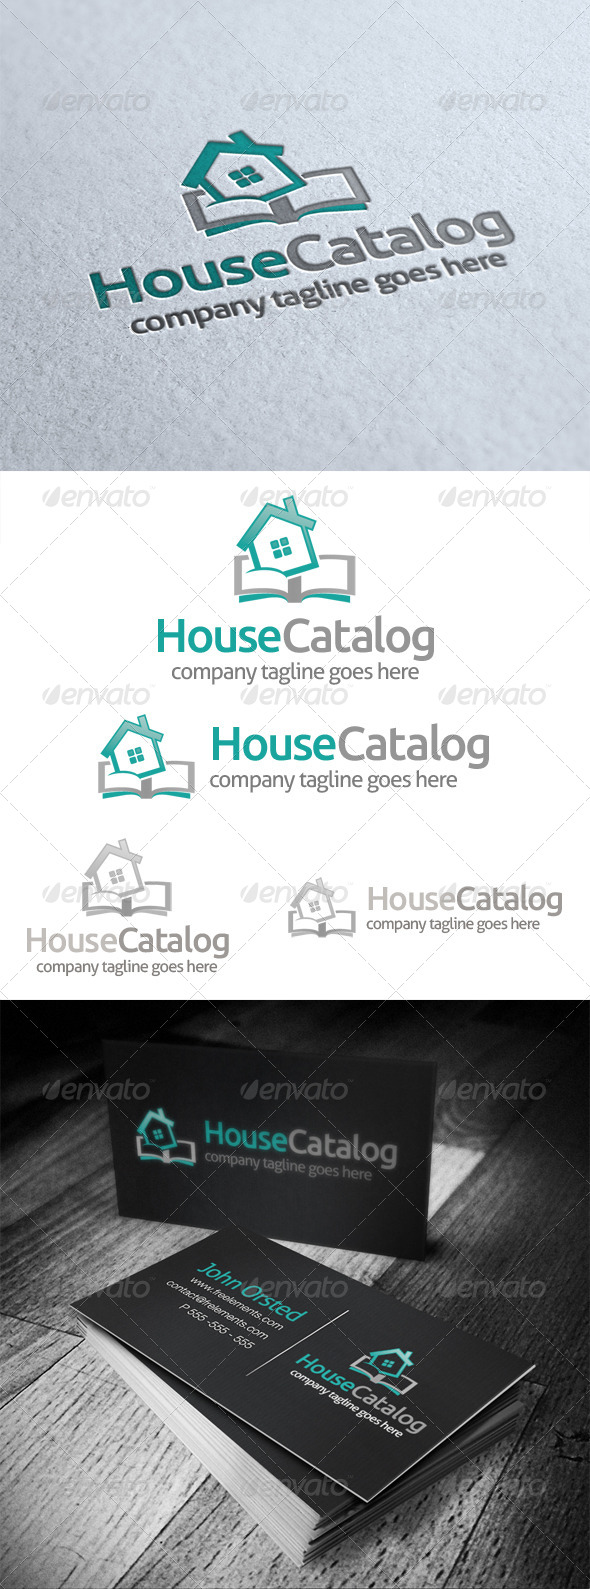 GraphicRiver House Catalog Logo 4965597